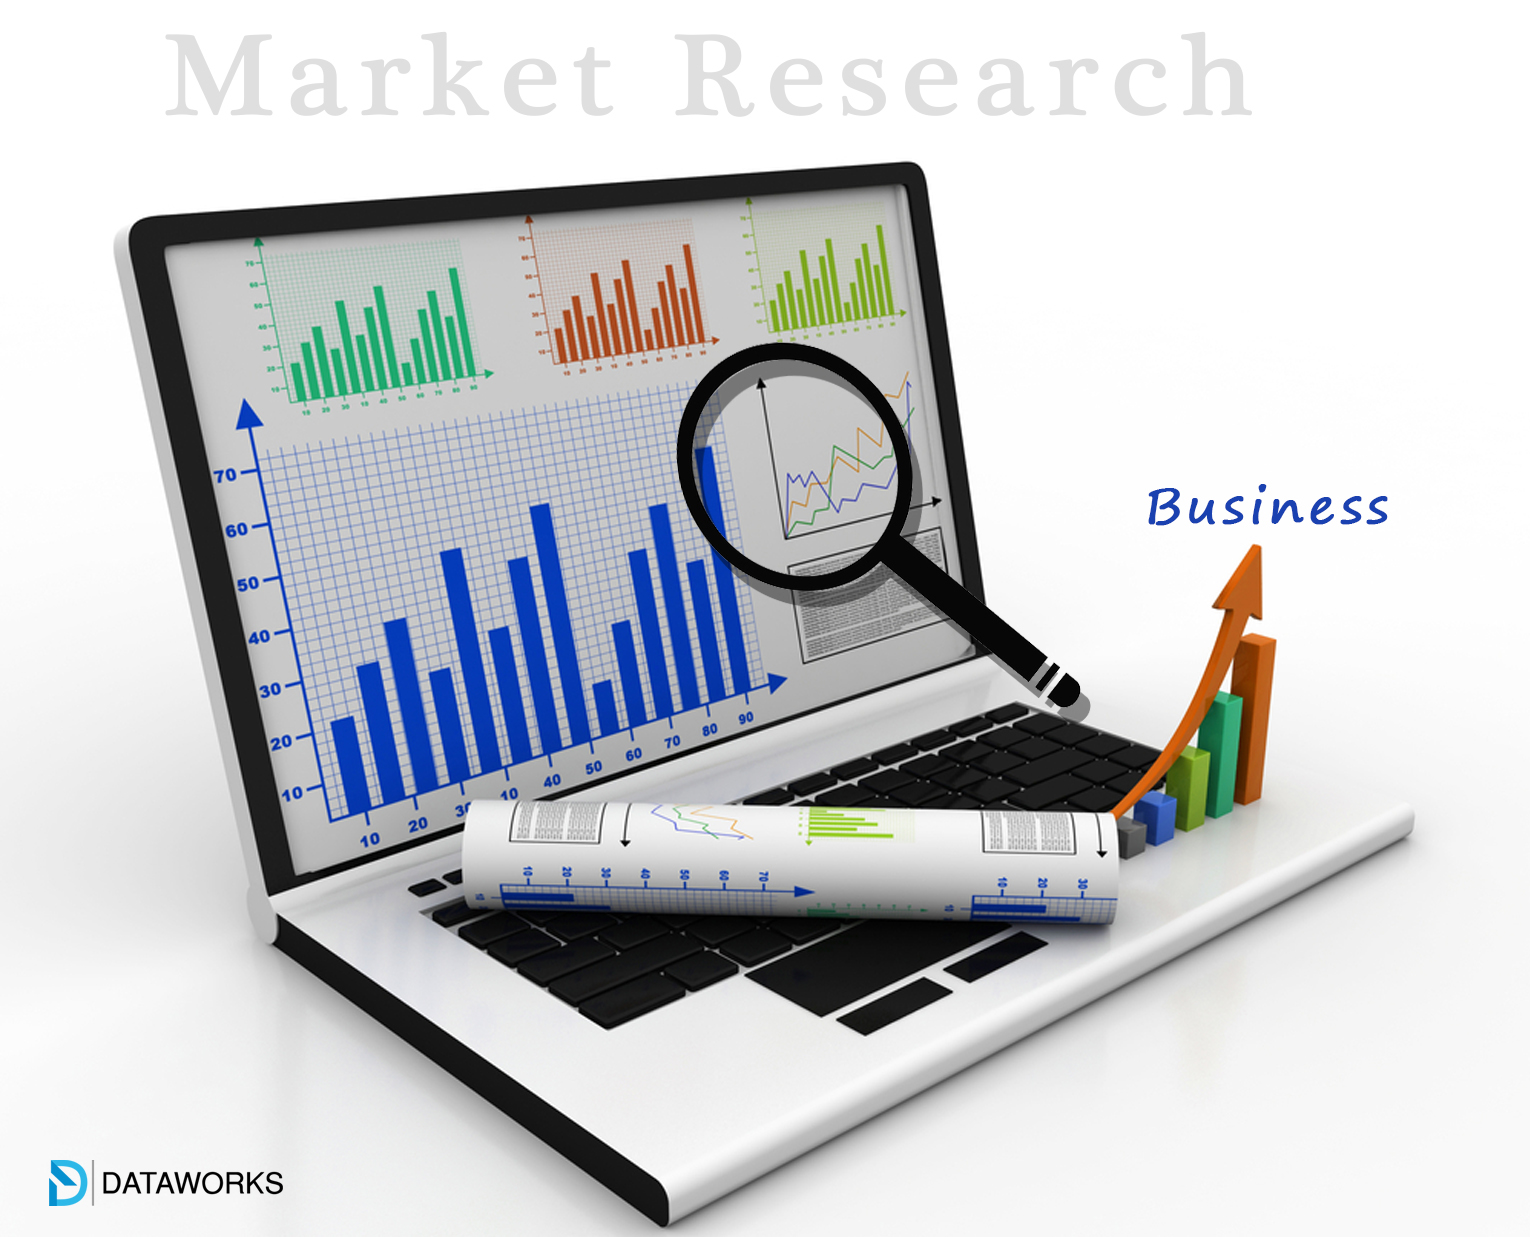 4 ways market research can benefit your business